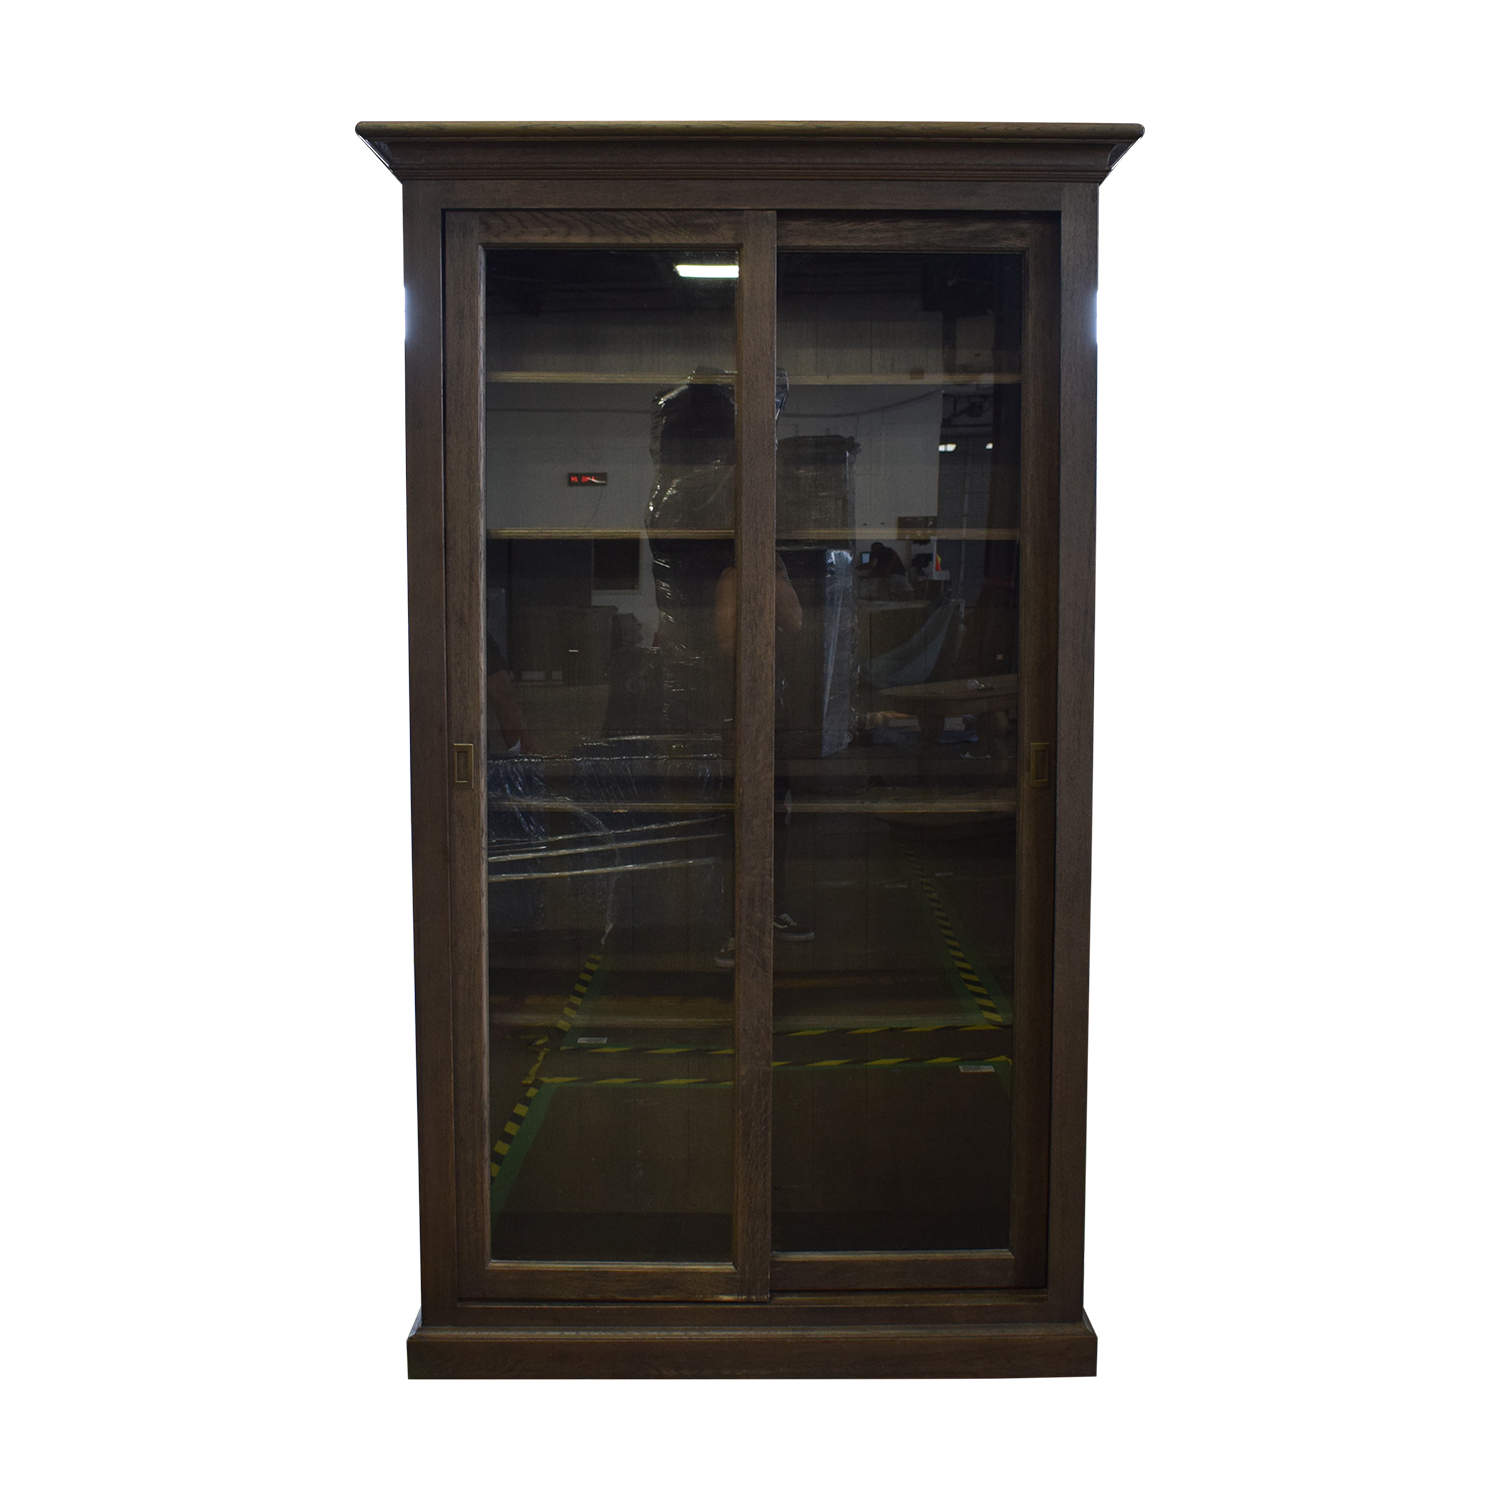 Restoration Hardware Restoration Hardware 20th C. English Brass Bar Slider Glass Double-Door Cabinet Storage